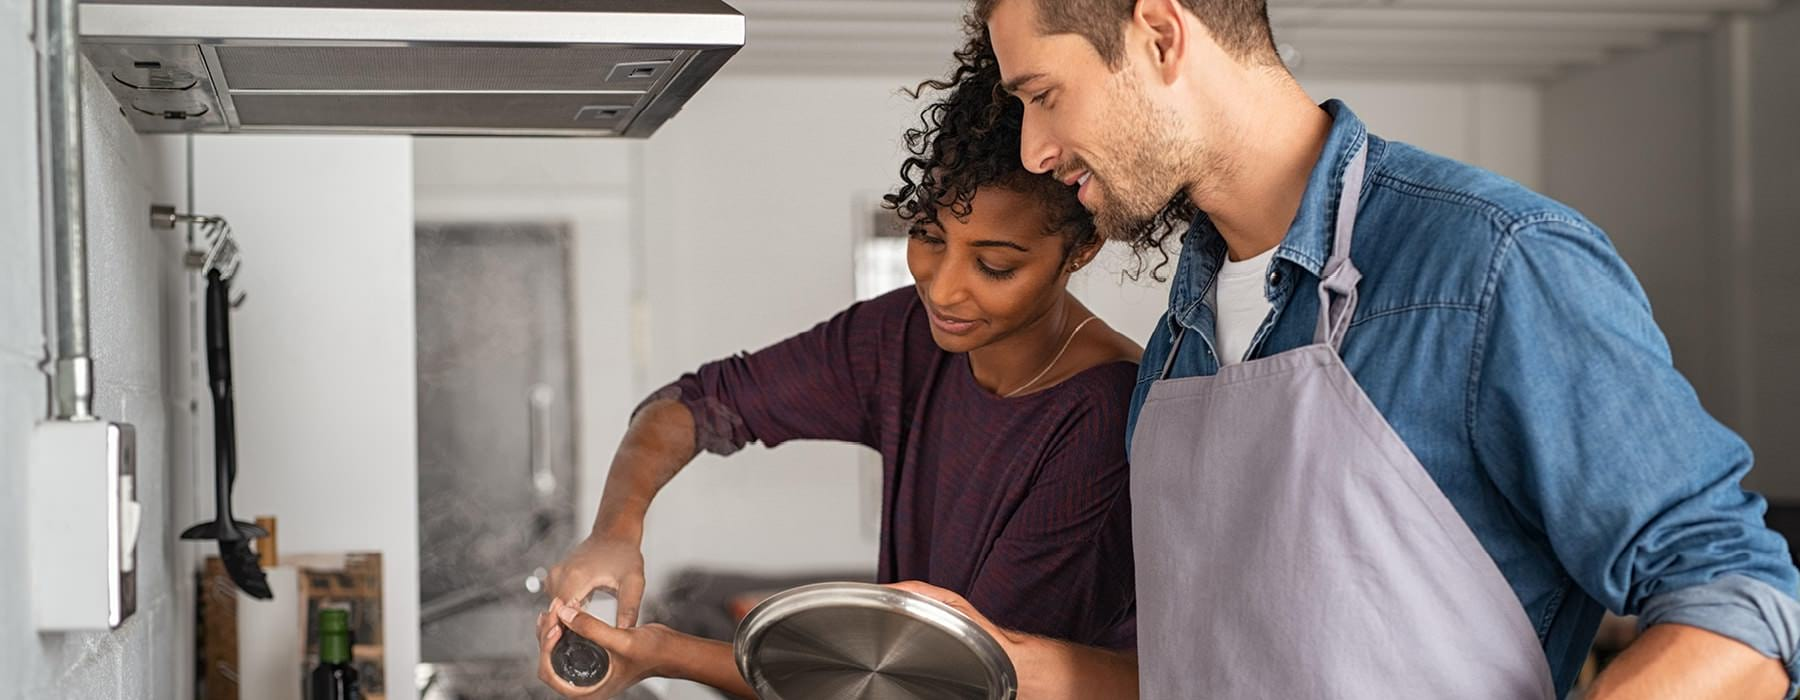 young couple cook over kitchen stove